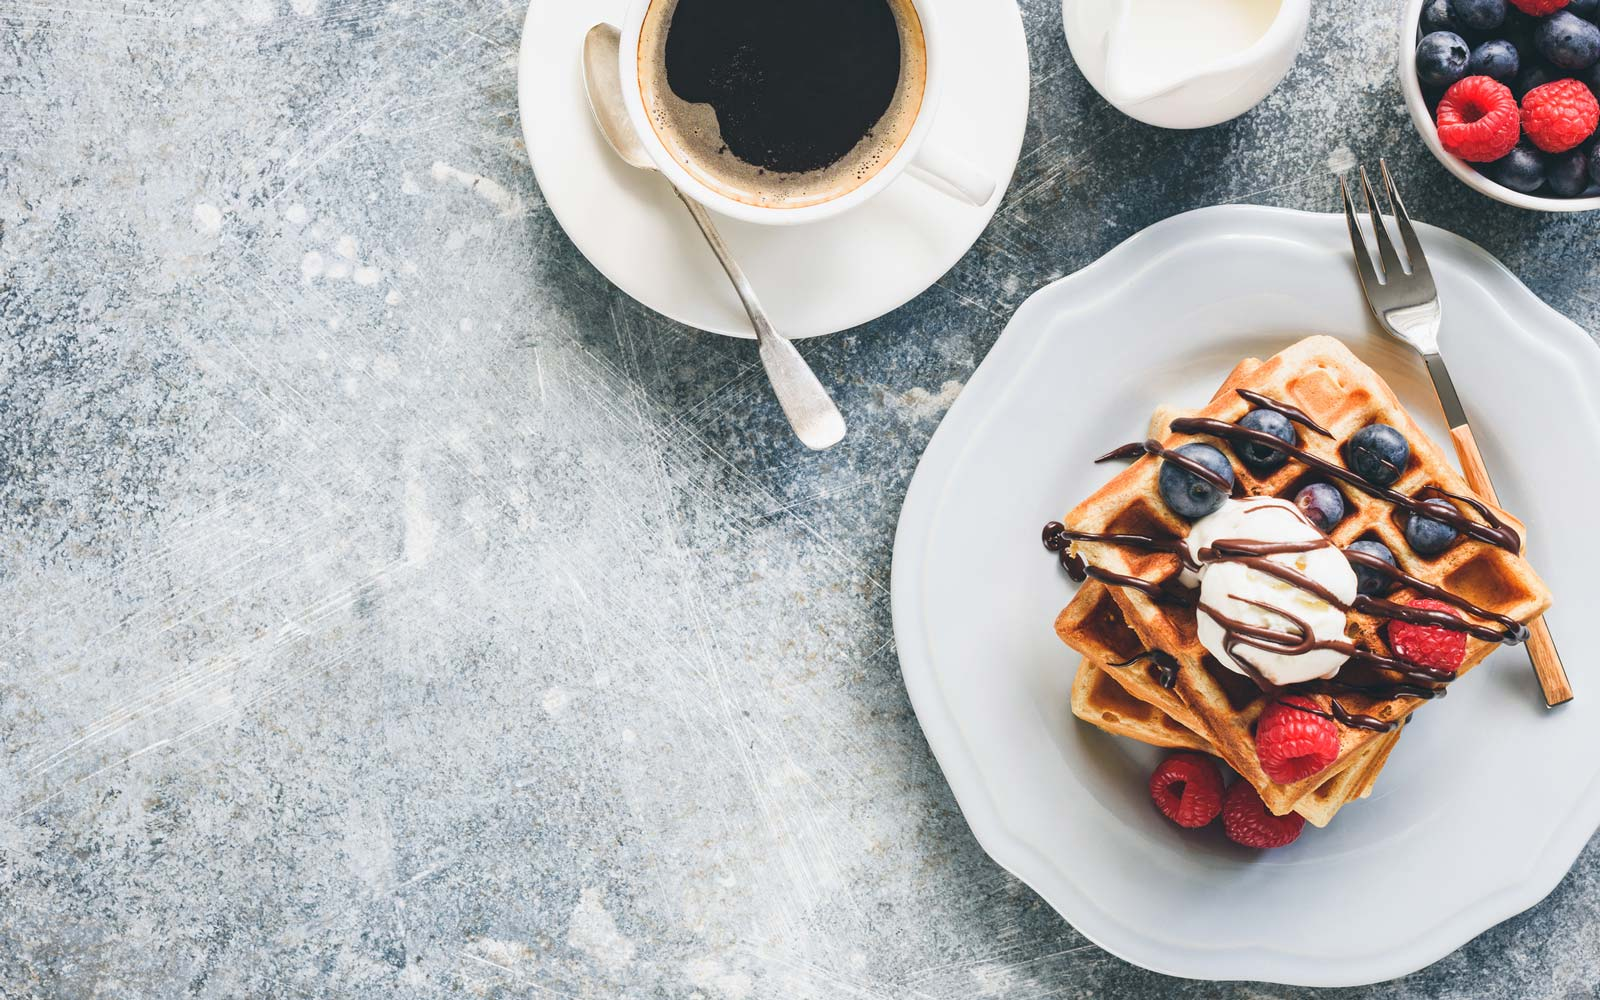 Belgian waffles with ice cream, berries and cup of coffee